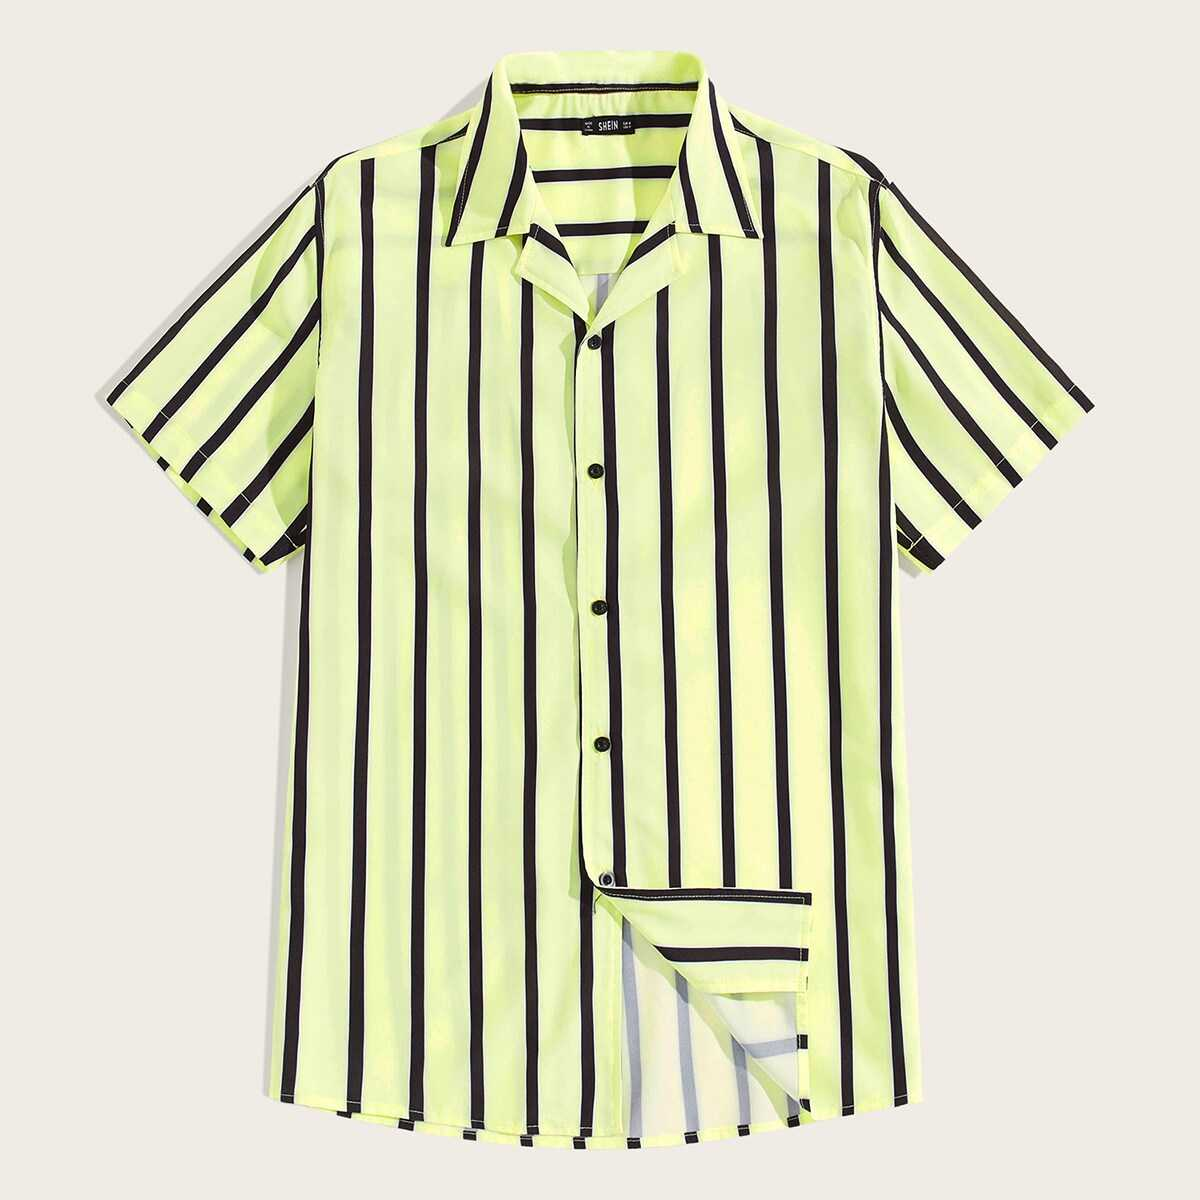 Guys Single Breasted Notched Collar Striped Shirt in Yellow by ROMWE on GOOFASH